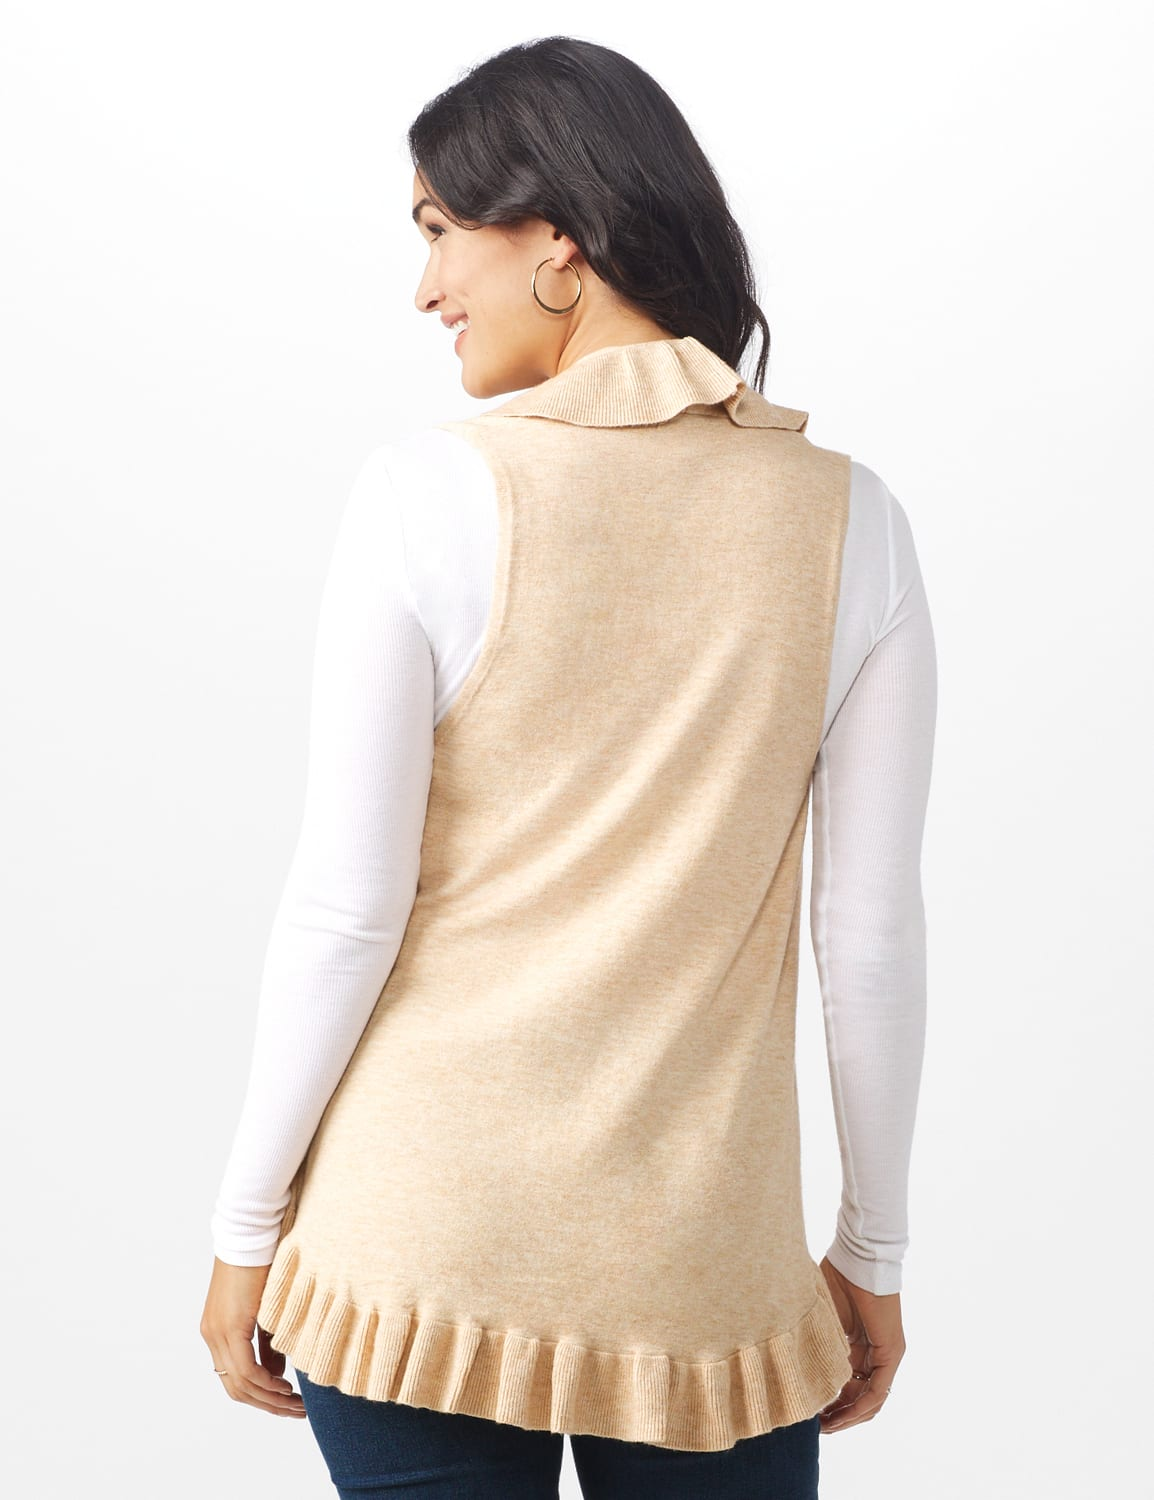 Roz & Ali Ruffle Sweater Vest - Misses - Oatmeal - Back